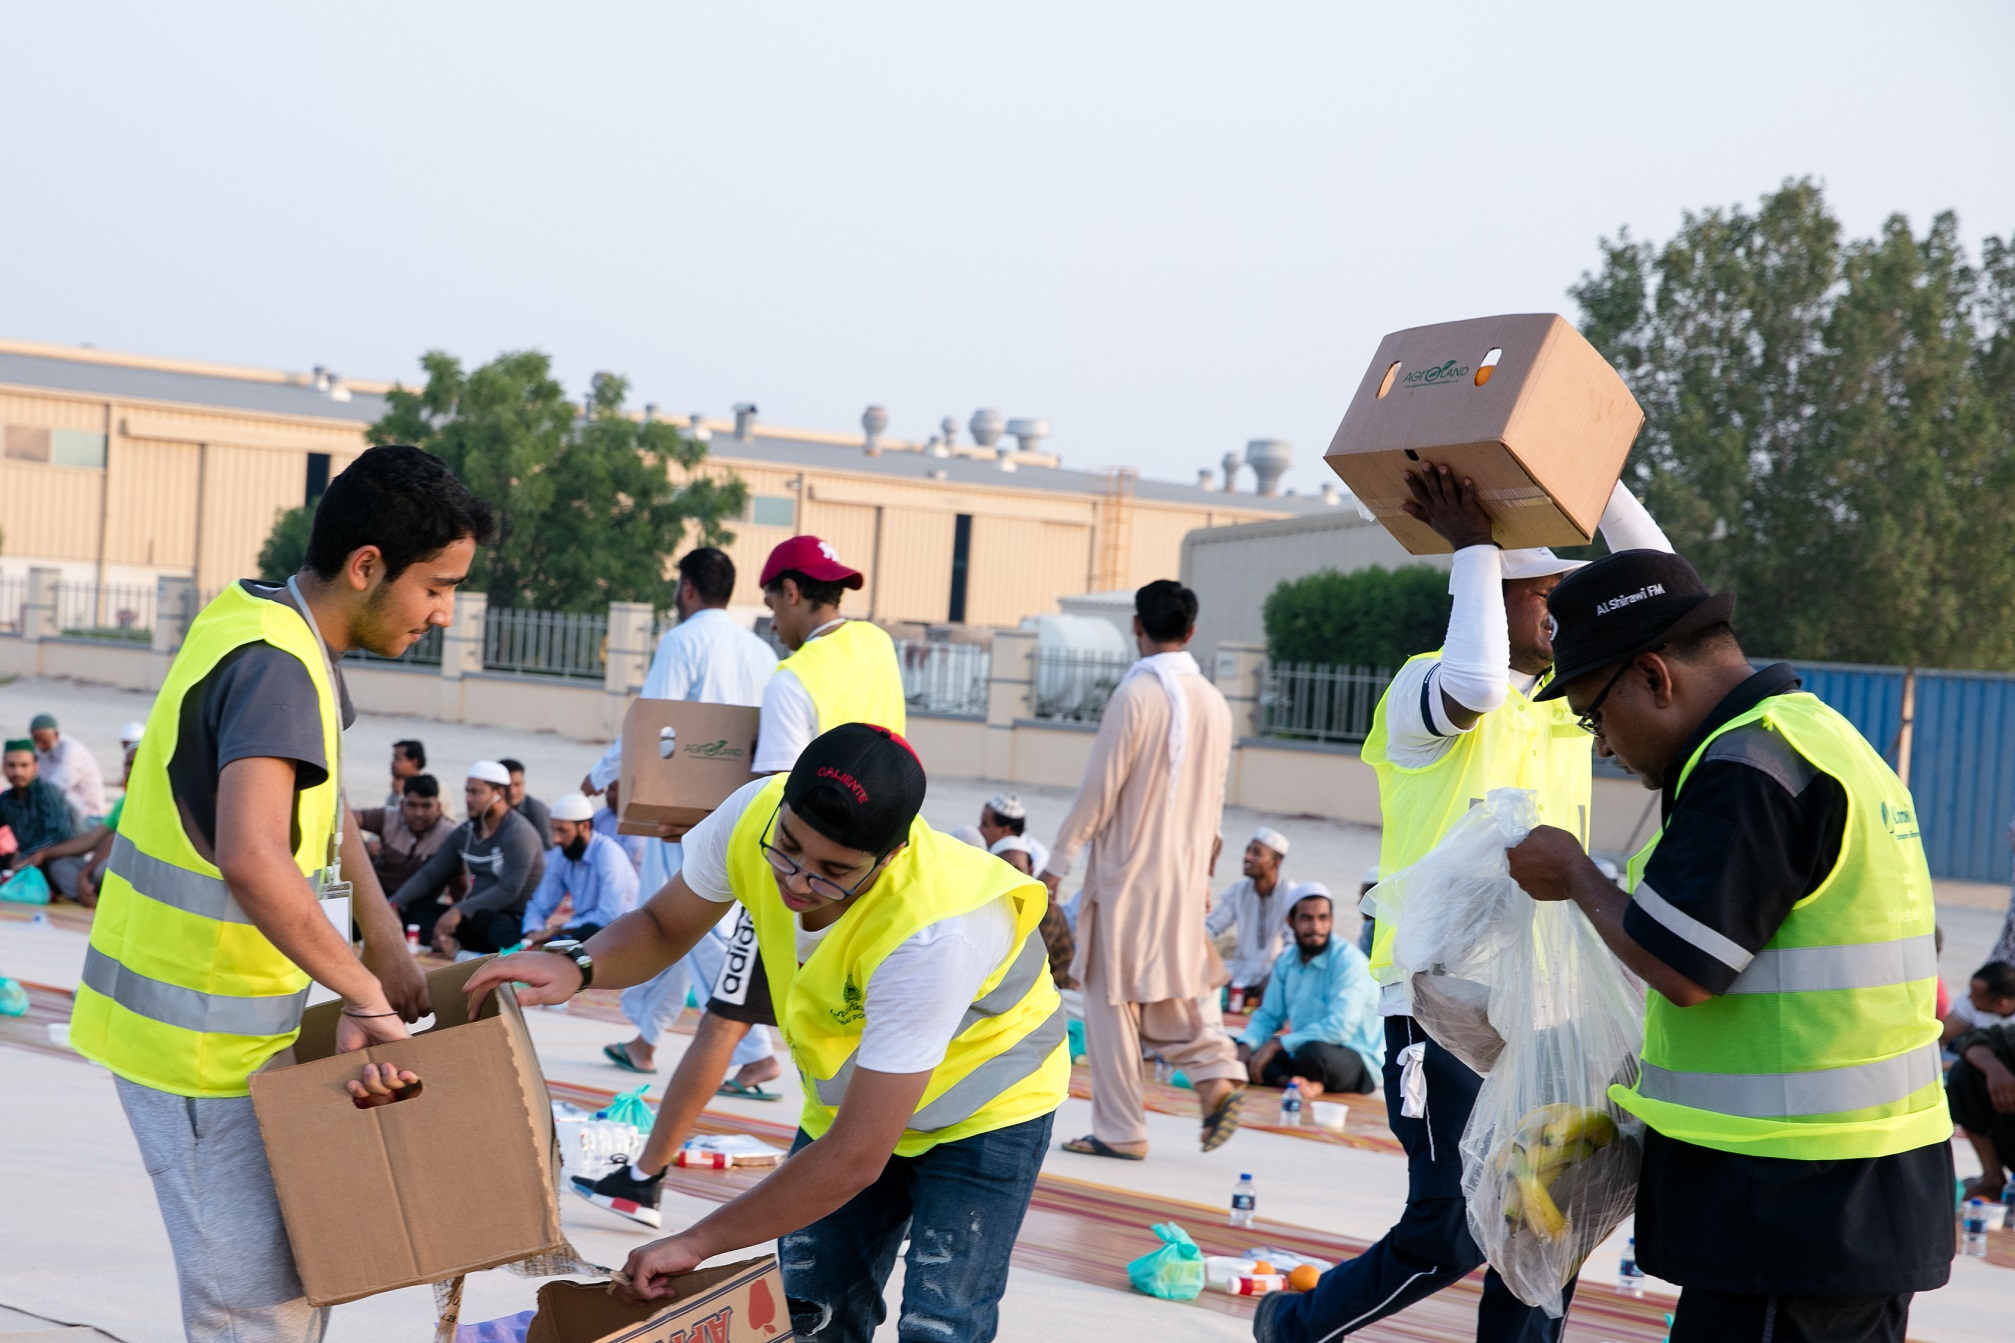 dubai holding's ramadan initiatives assist over 125,000 people across dubai2